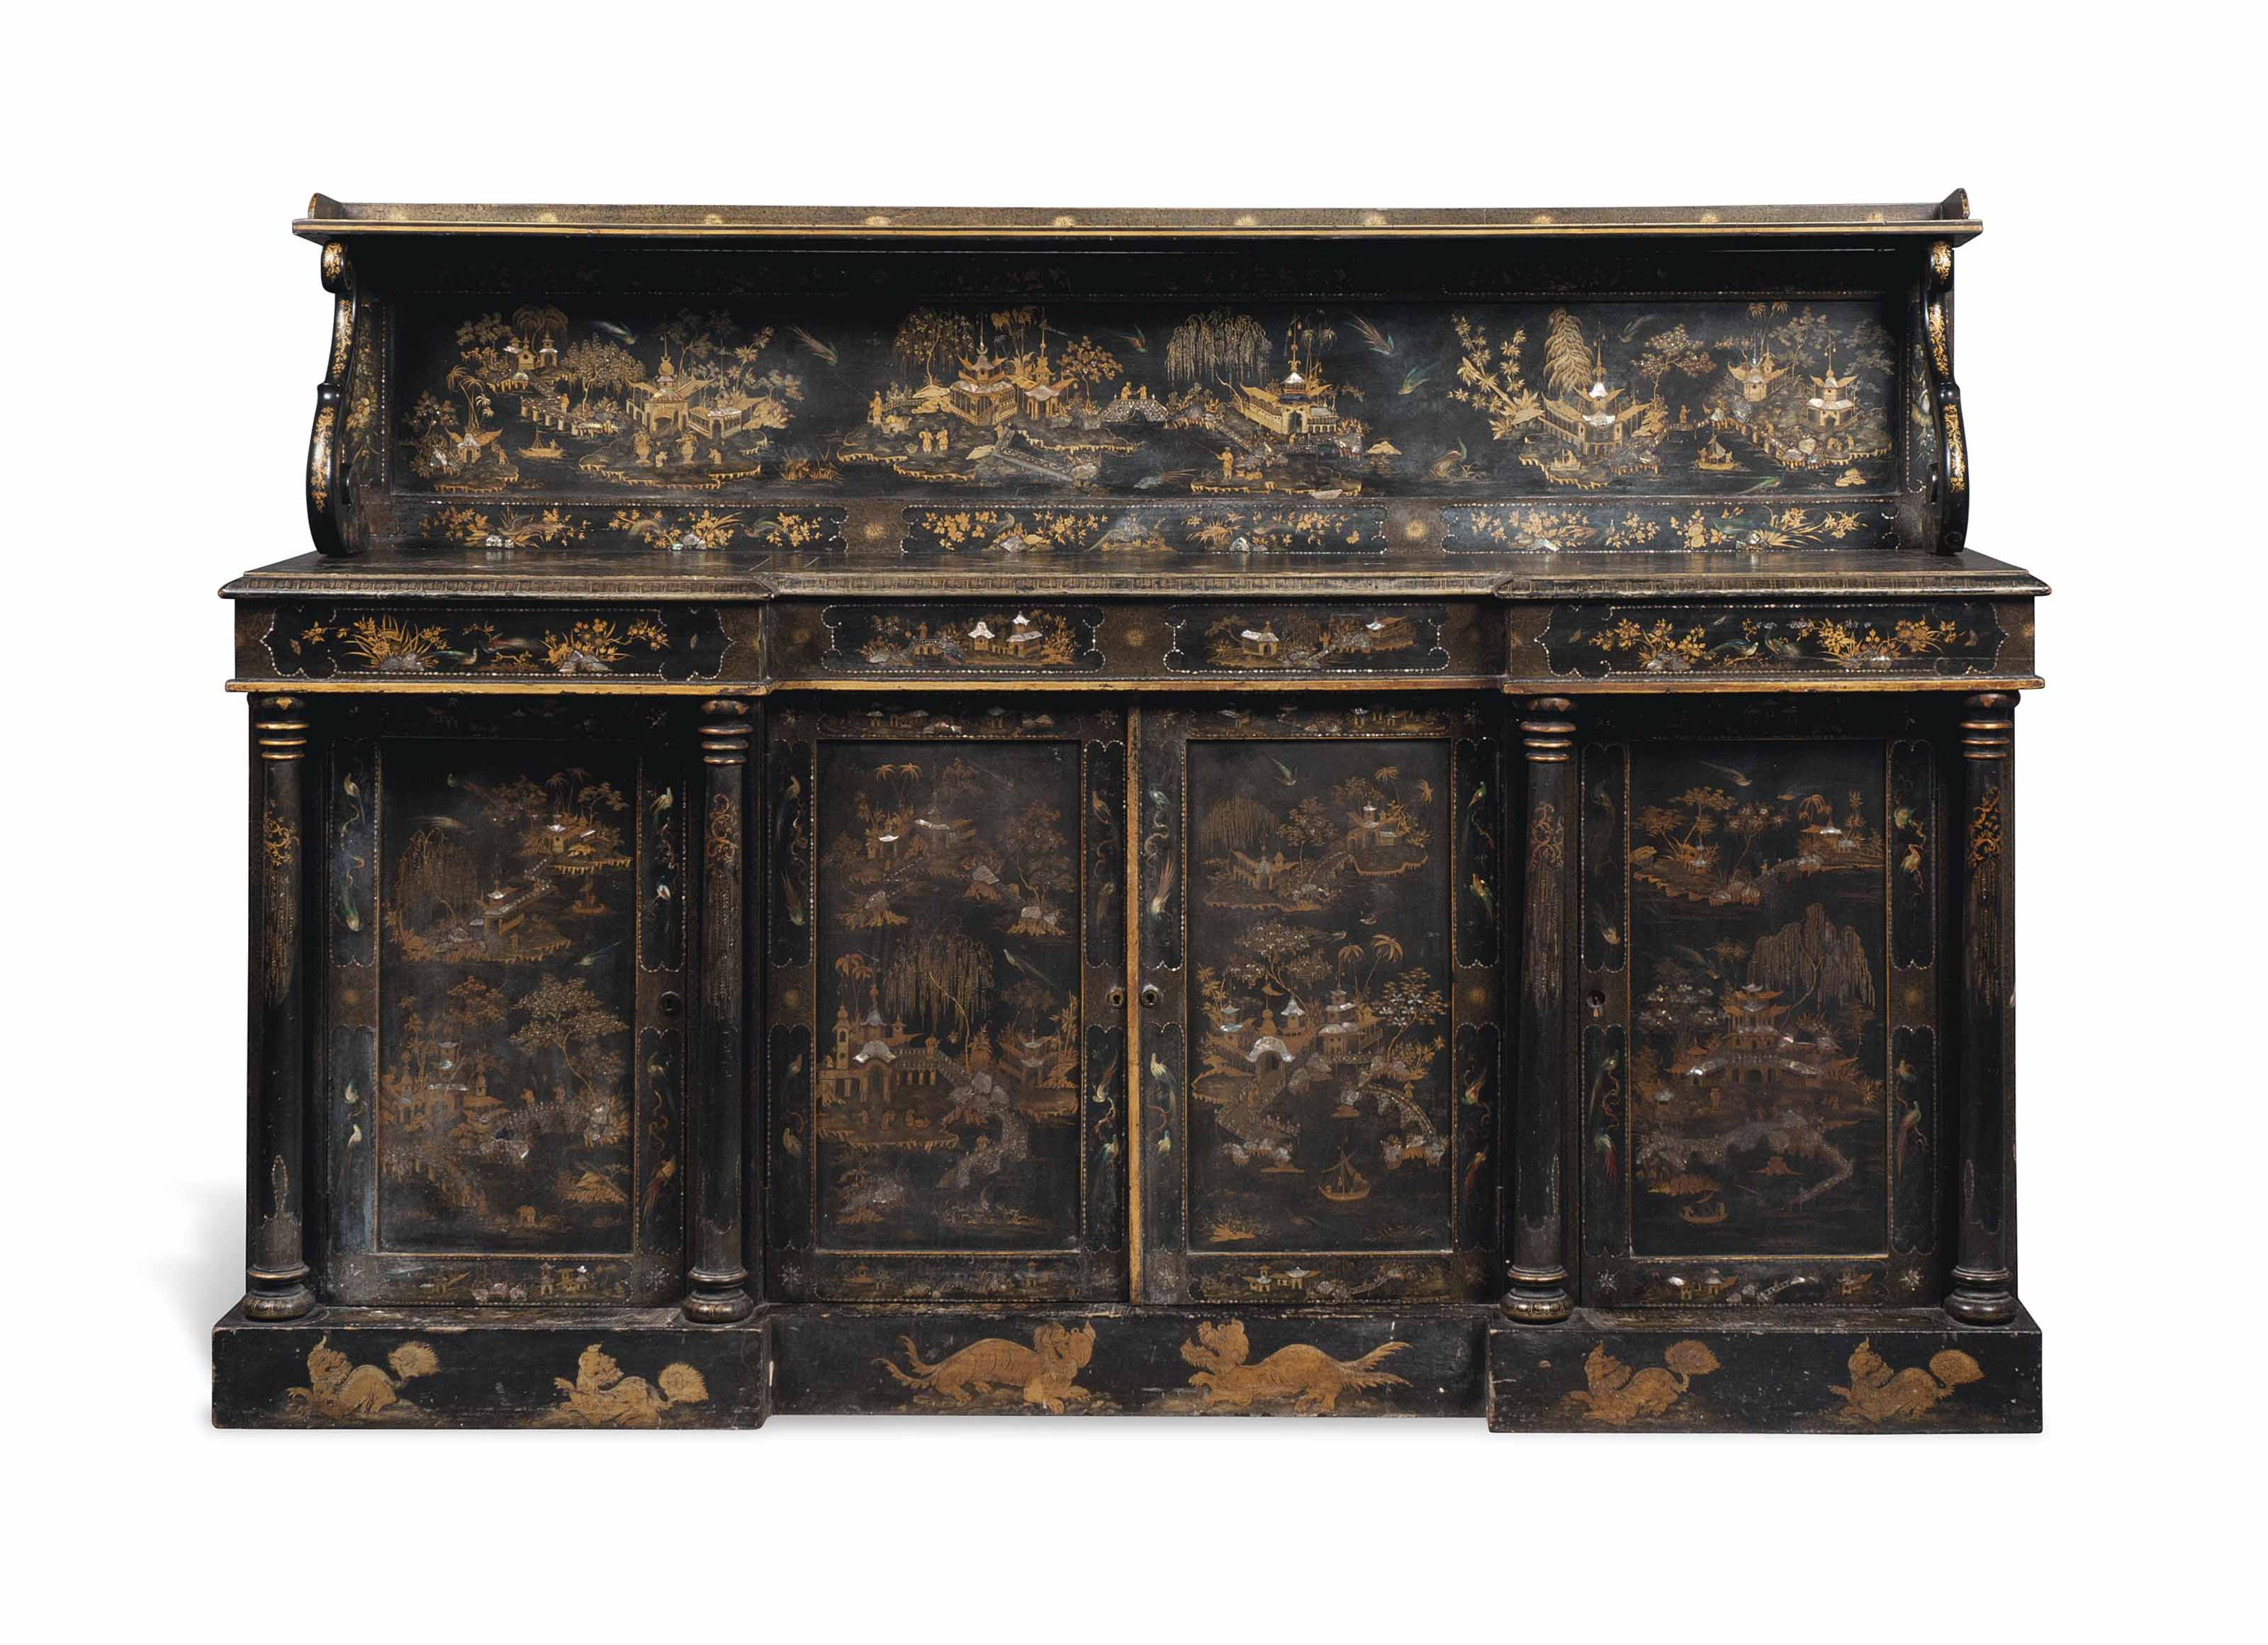 A WILLIAM IV MOTHER-OF-PEARL-INLAID BLACK AND GILT-JAPANNED PAPIER-MACHE SIDE CABINET